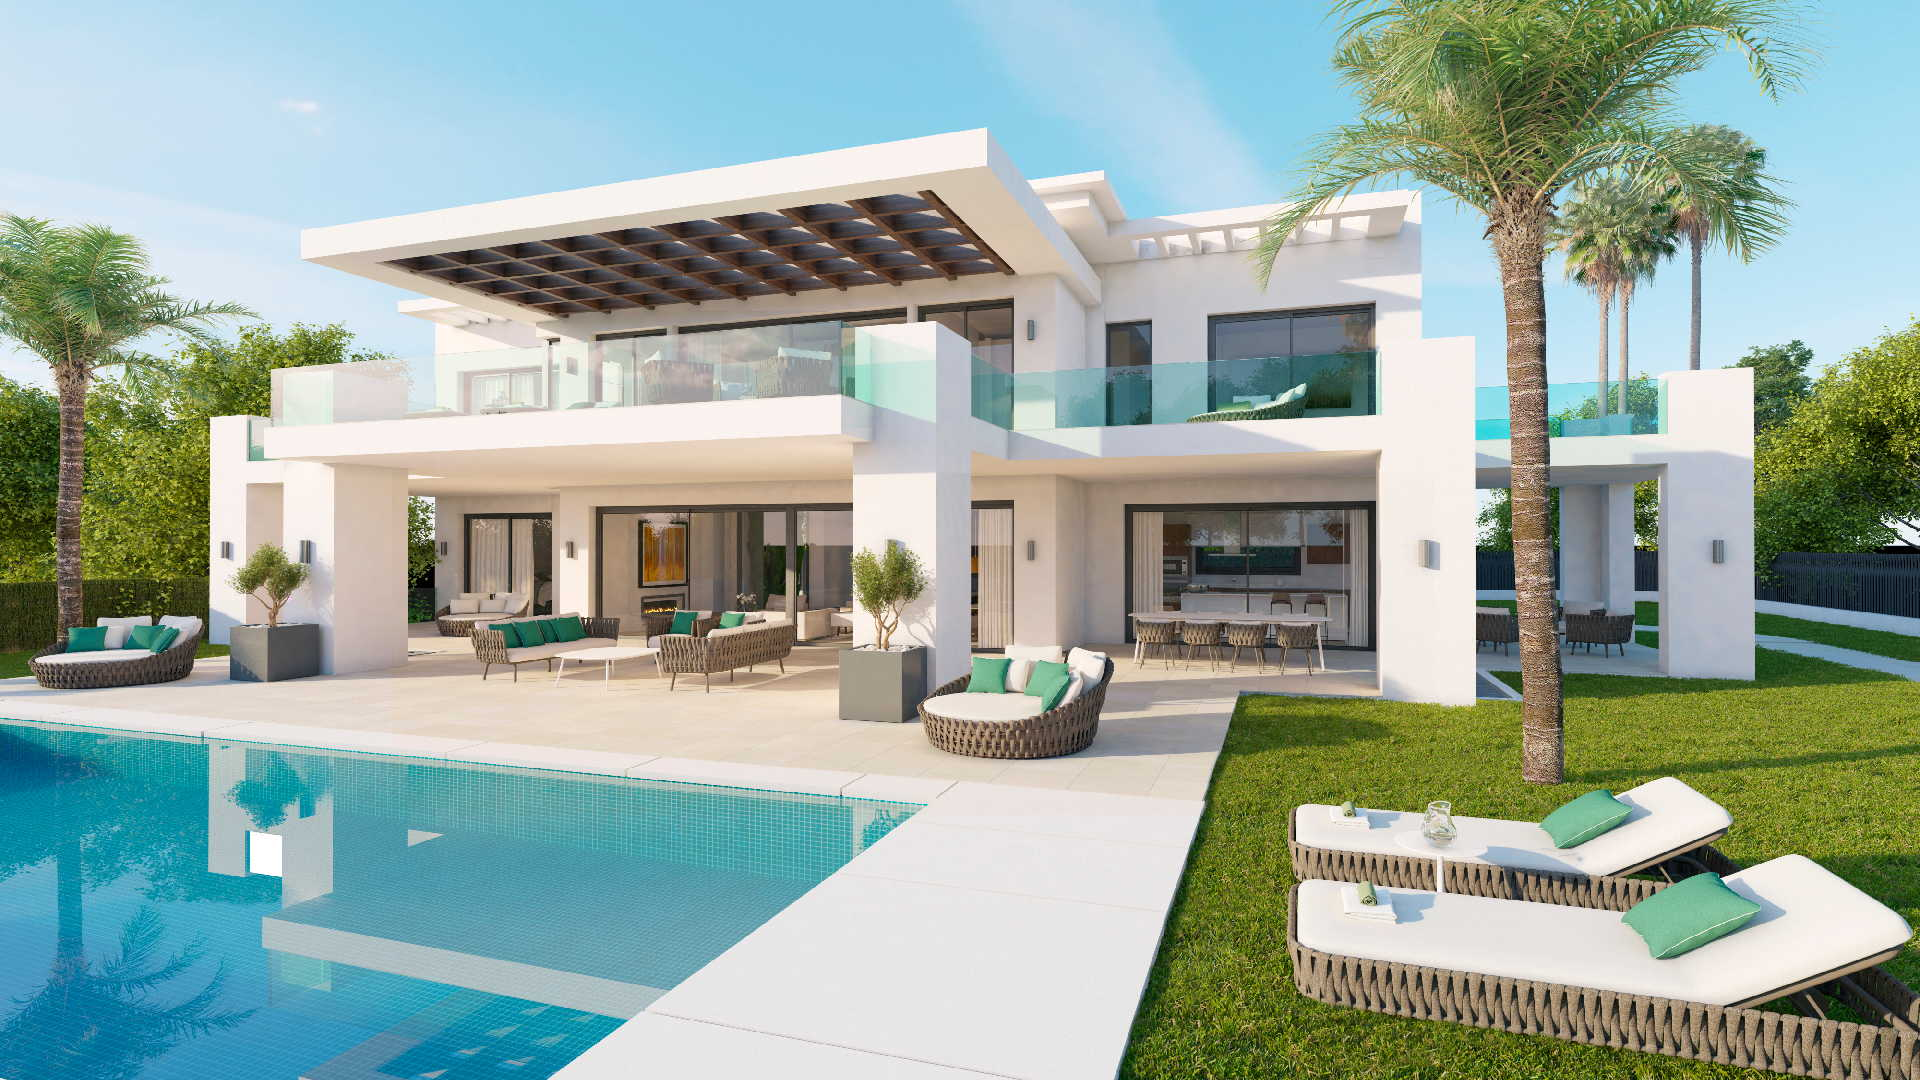 New villa in los olivos nueva andalucia marbella for sale for New modern style homes